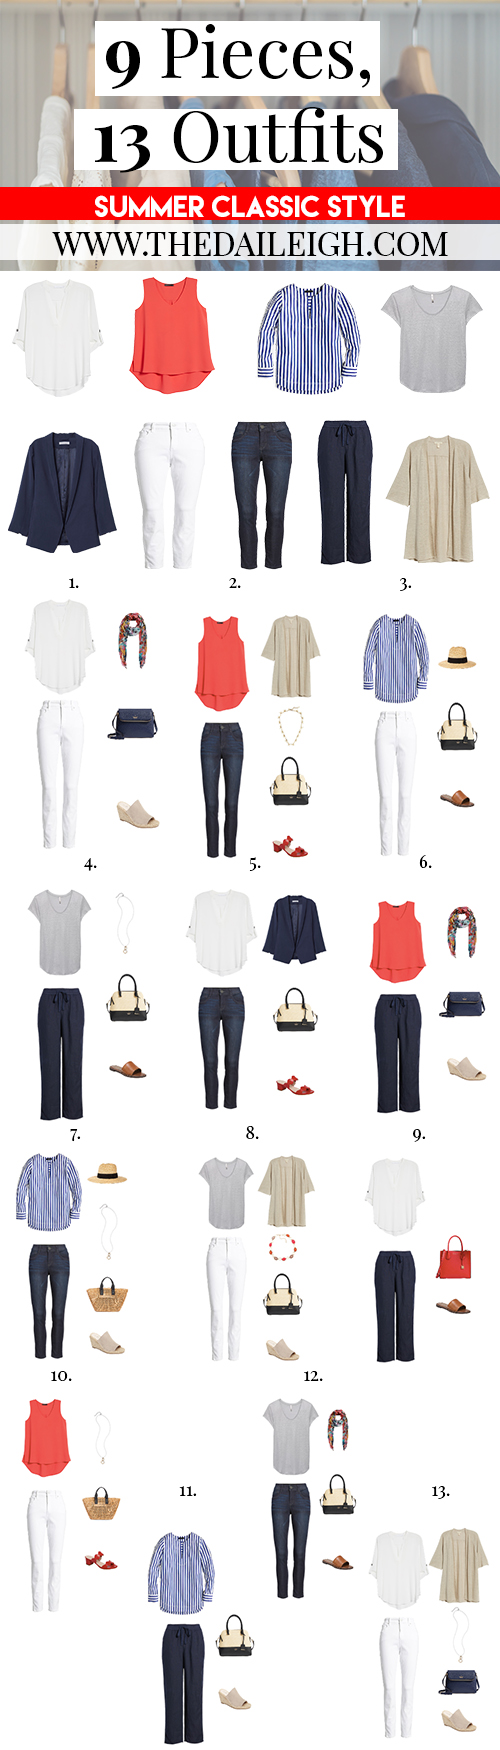 9 Pieces, 13 Outfits - Summer Classic Style